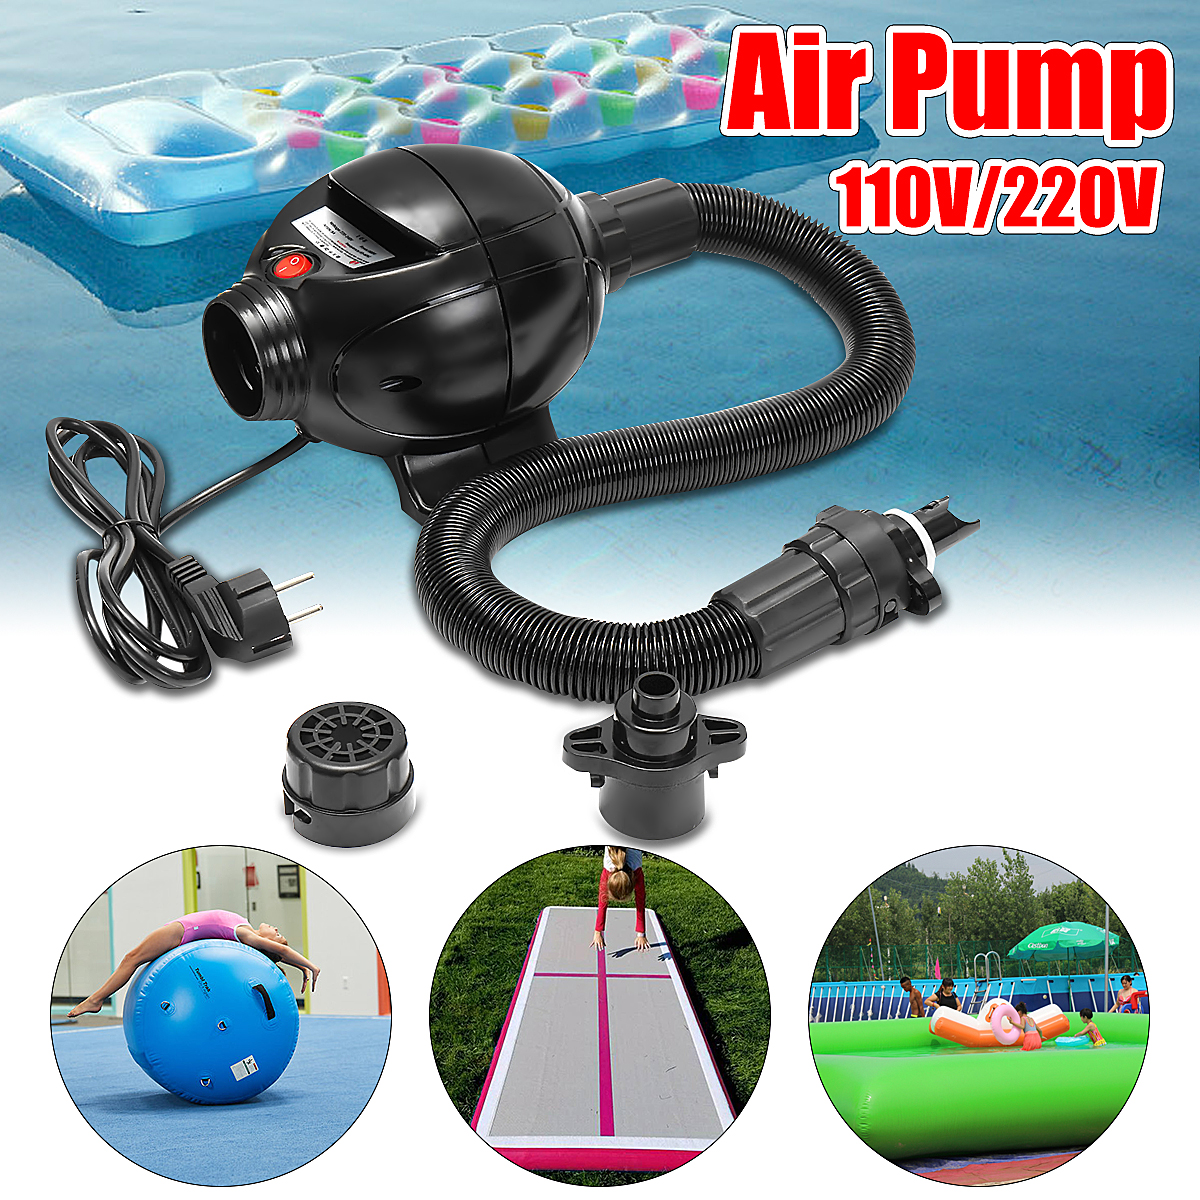 все цены на 110V/220V Electric Air Pump For Air Track Inflatable Home Gymnastics Tumbling Mat онлайн